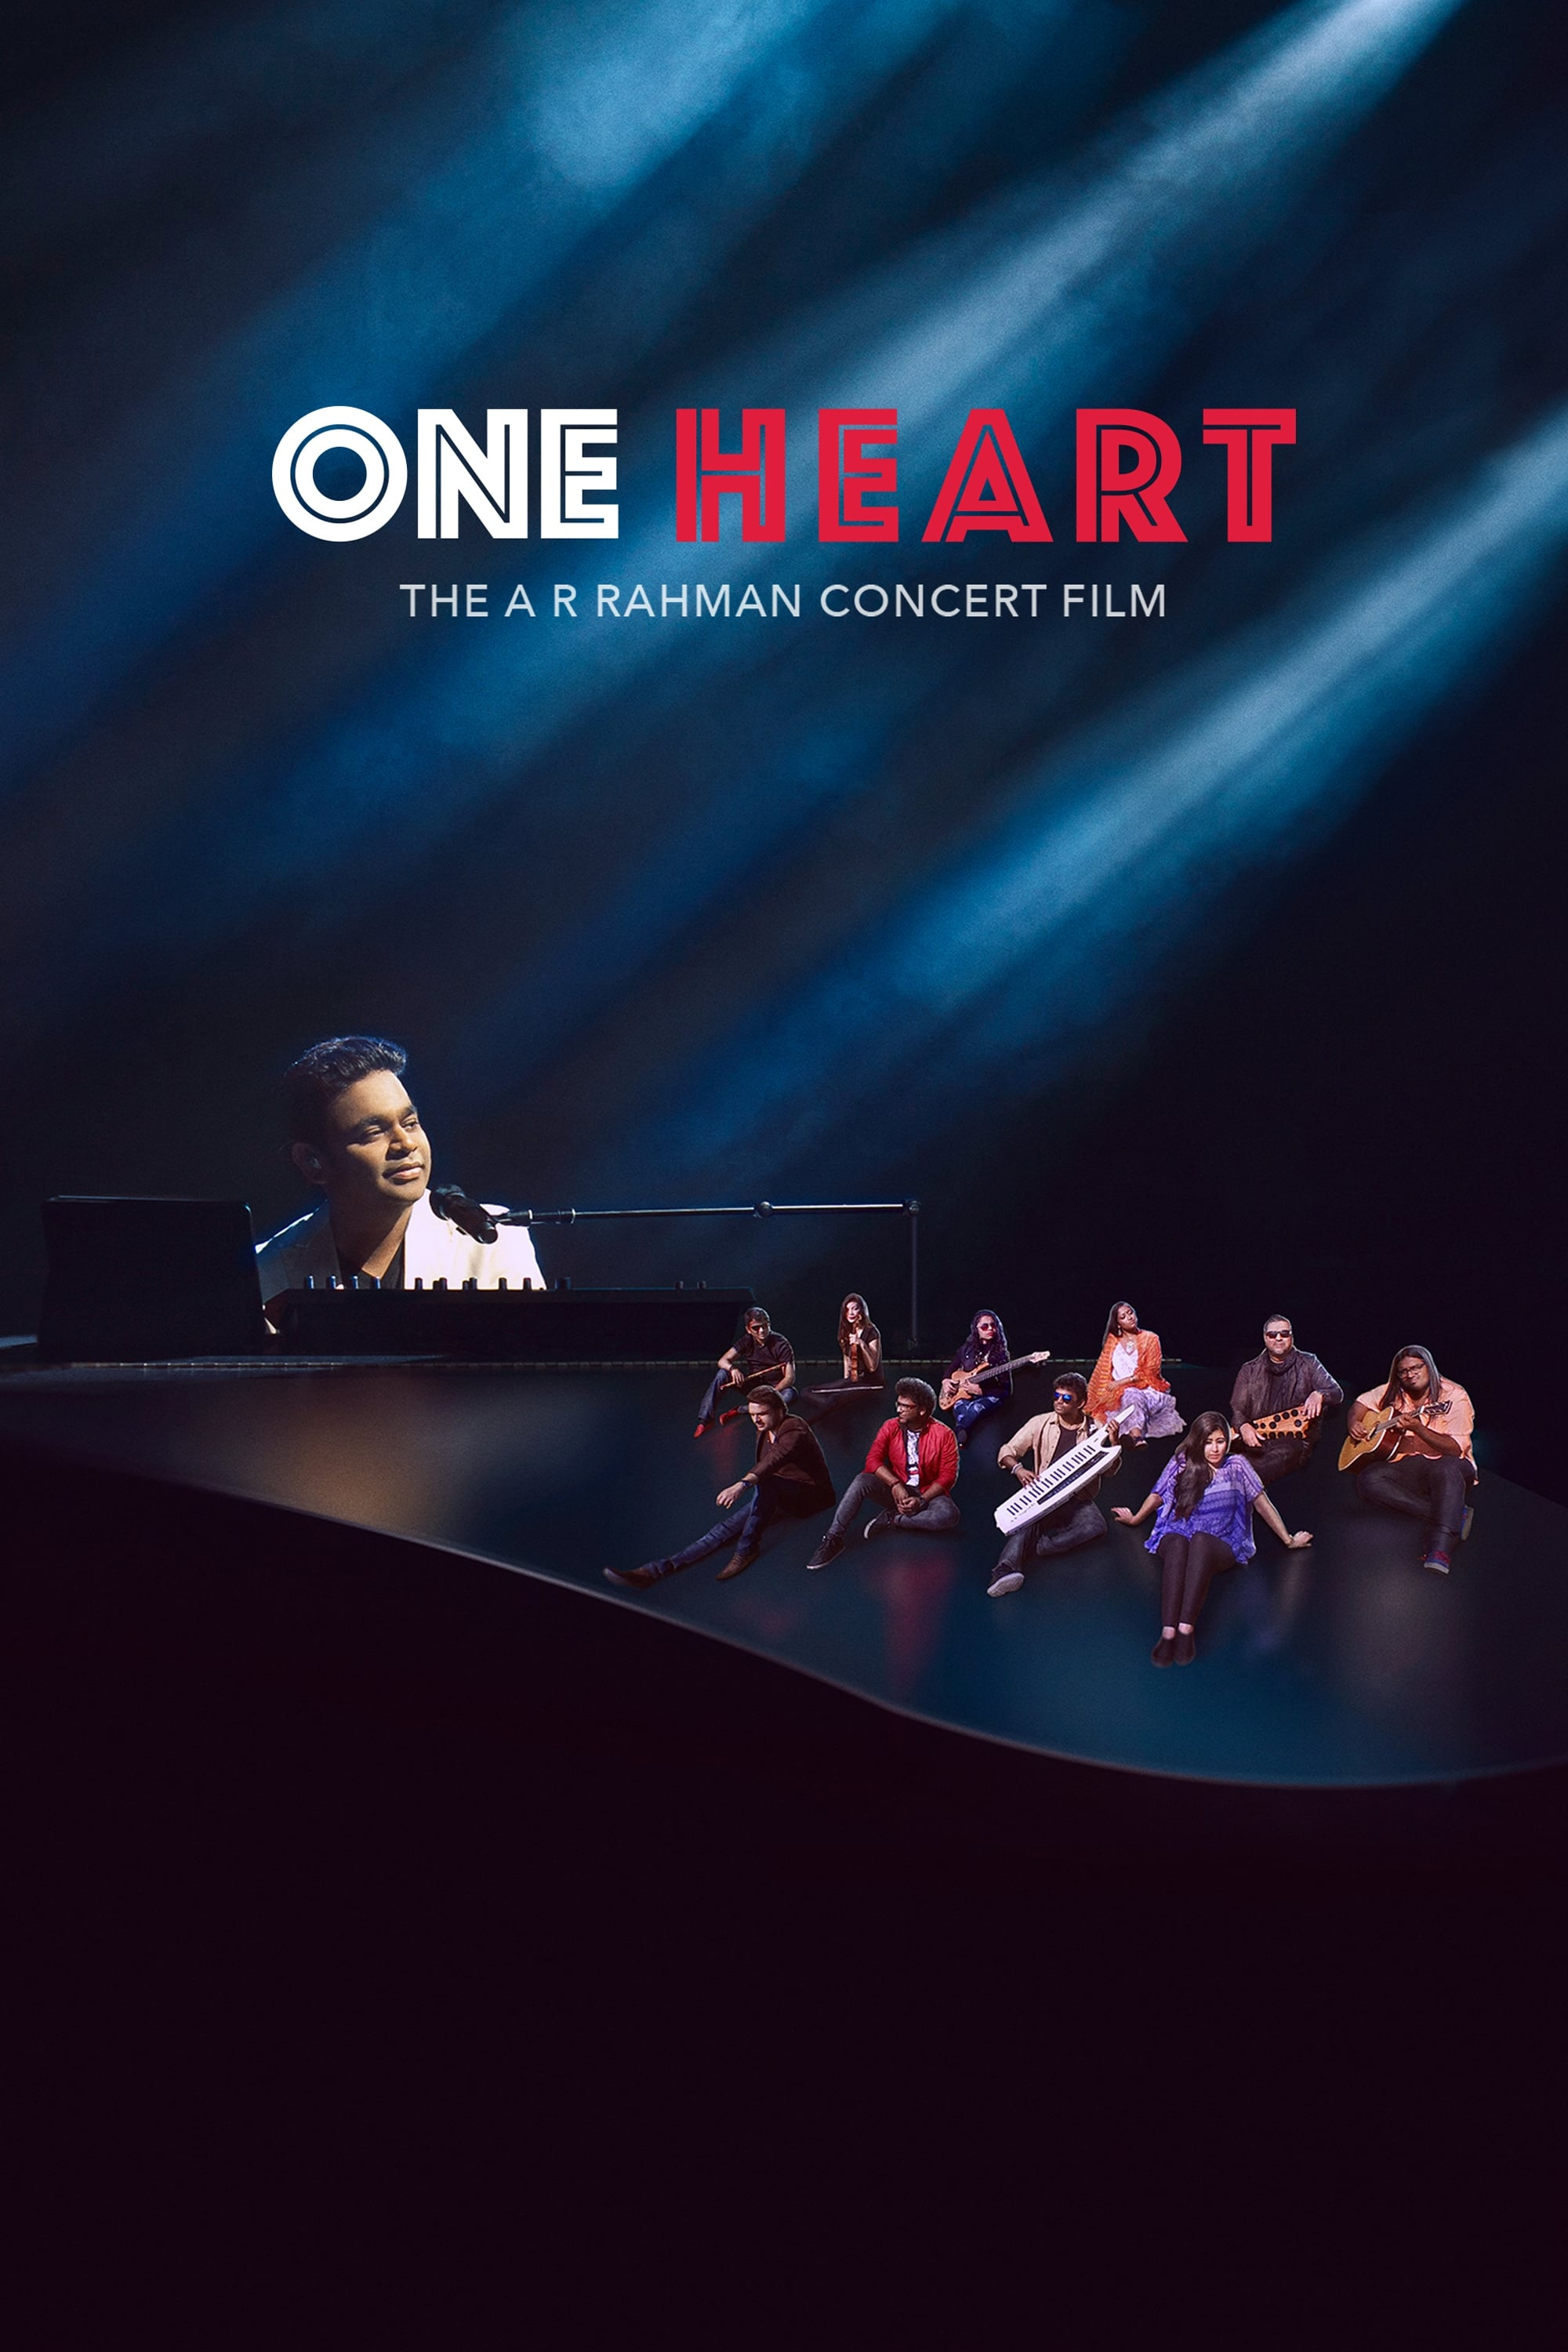 Watch the streaming movie One Heart: The A.R. Rahman Concert Film